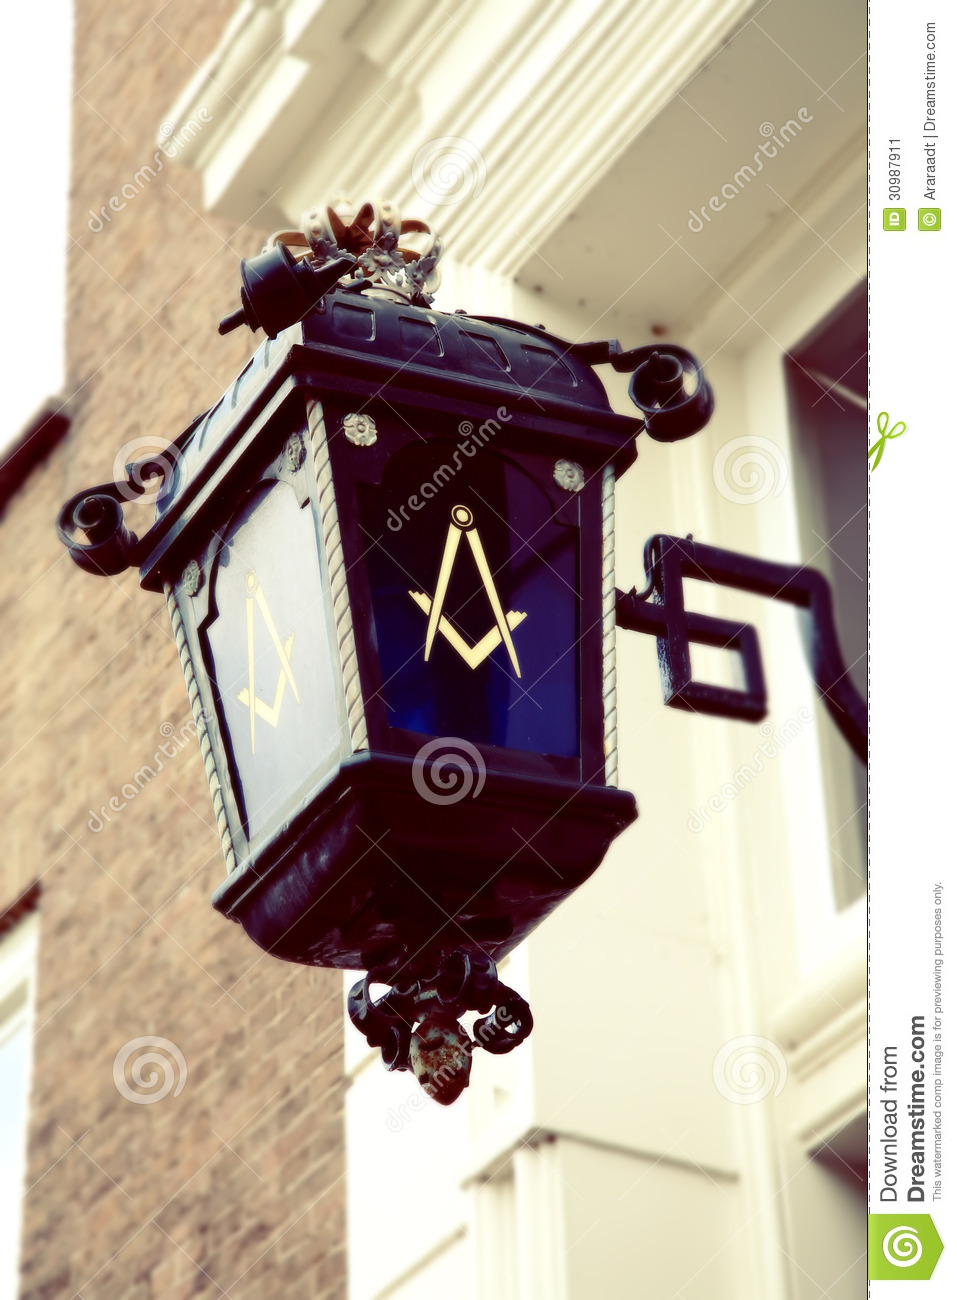 freemason symbol on street lamp stock image